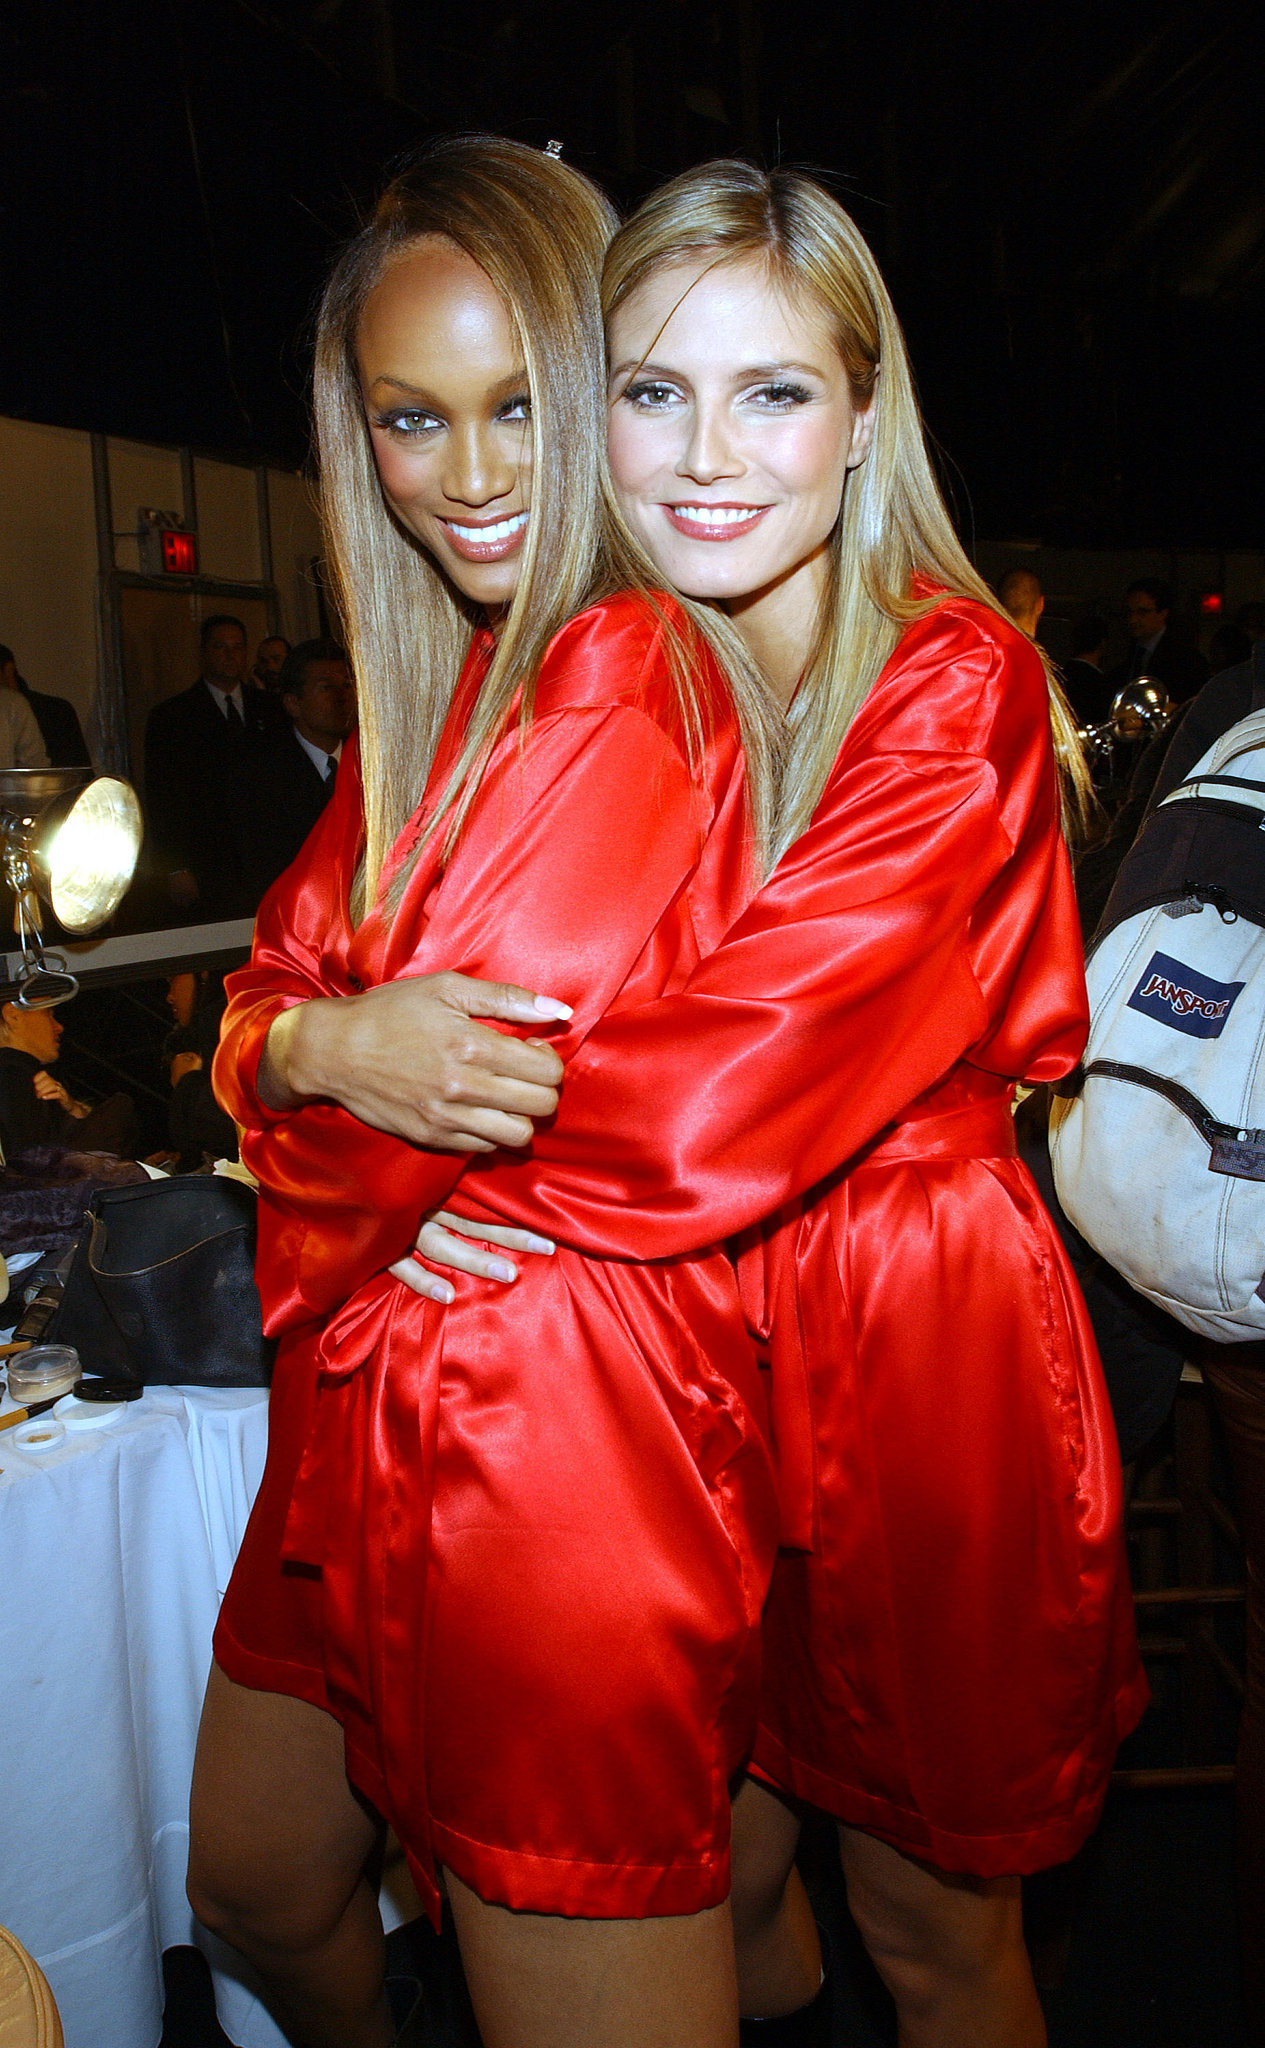 Tyra and Heidi hugged it out in their red robes backstage in 2001.